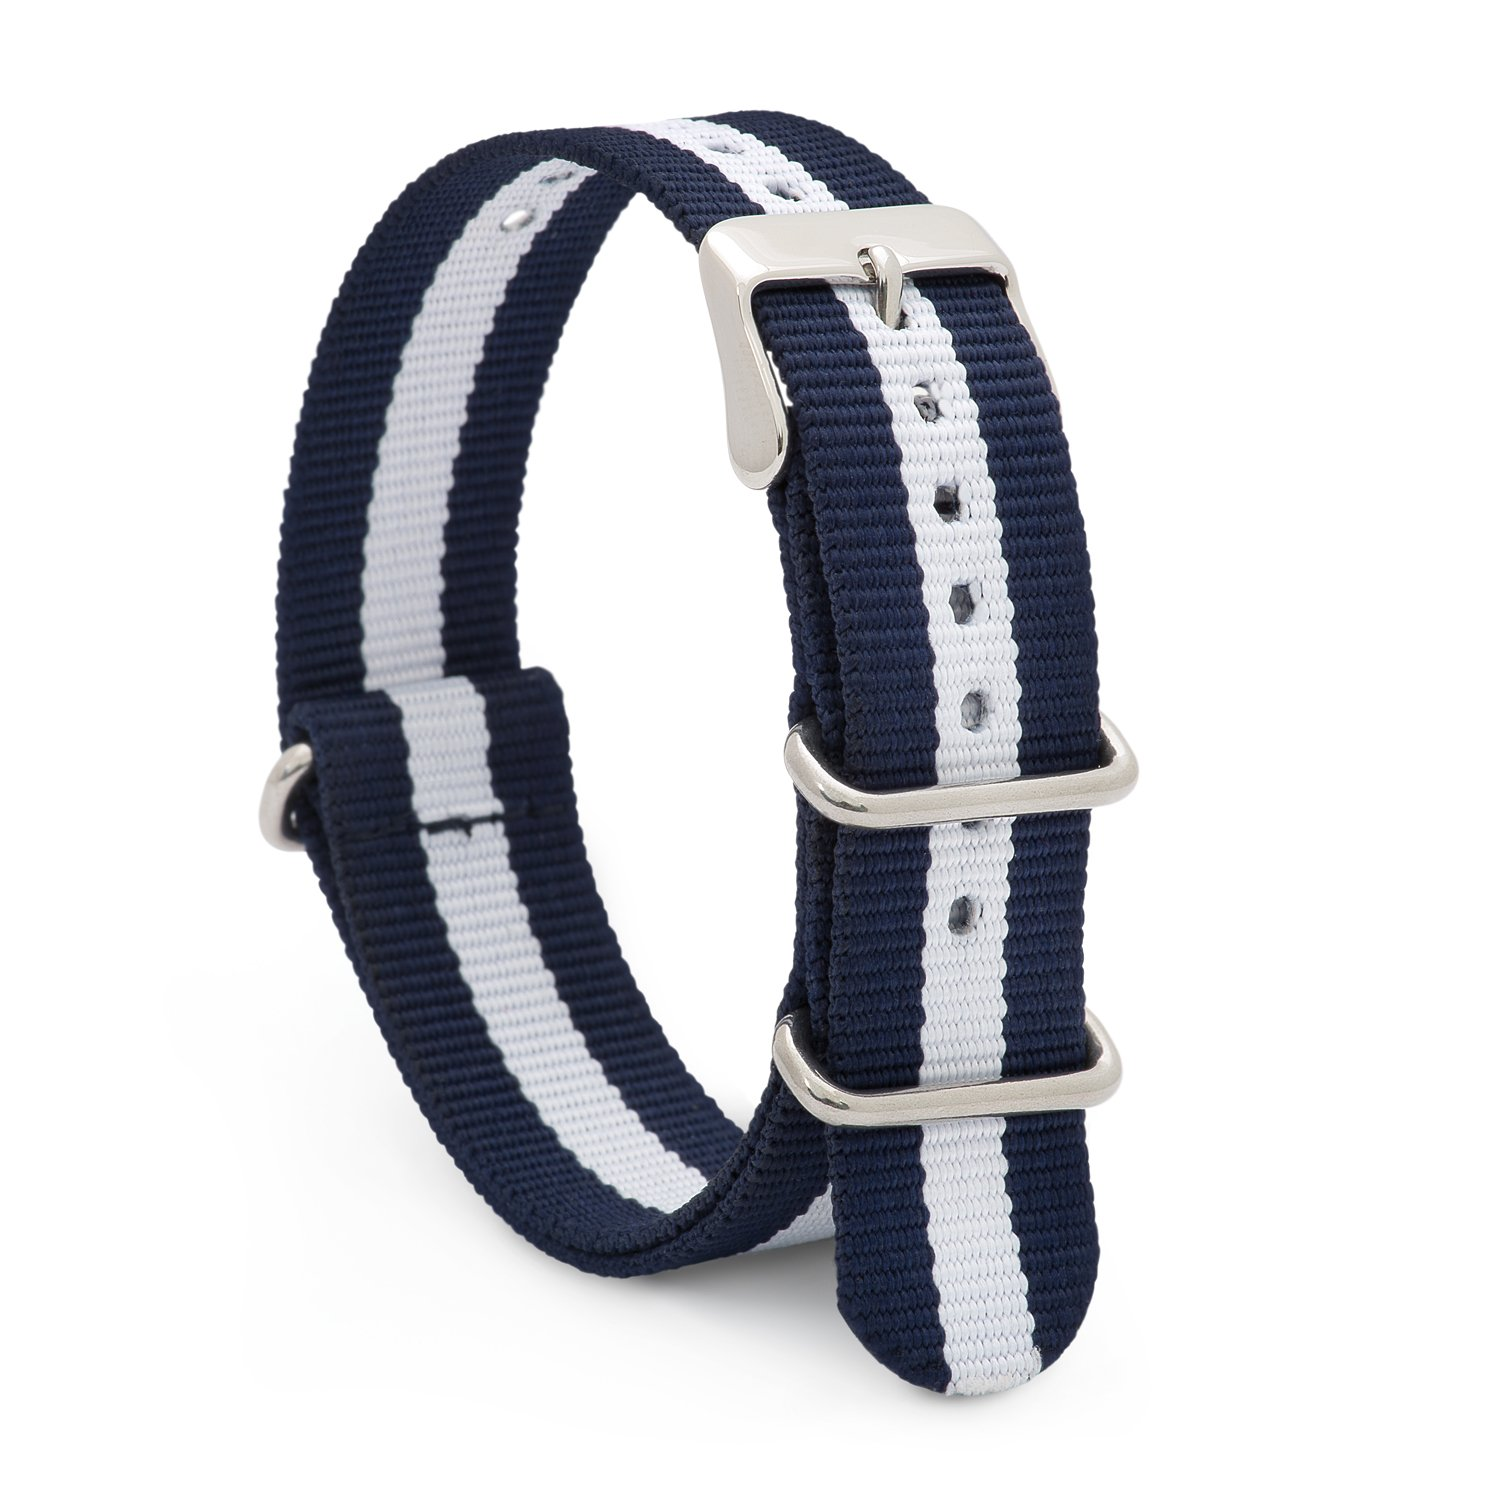 Speidel NATO Watch Band 20mm Blue and White Striped Woven Military Style Nylon Strap with Heavy Duty Stainless Steel Keepers and Buckle